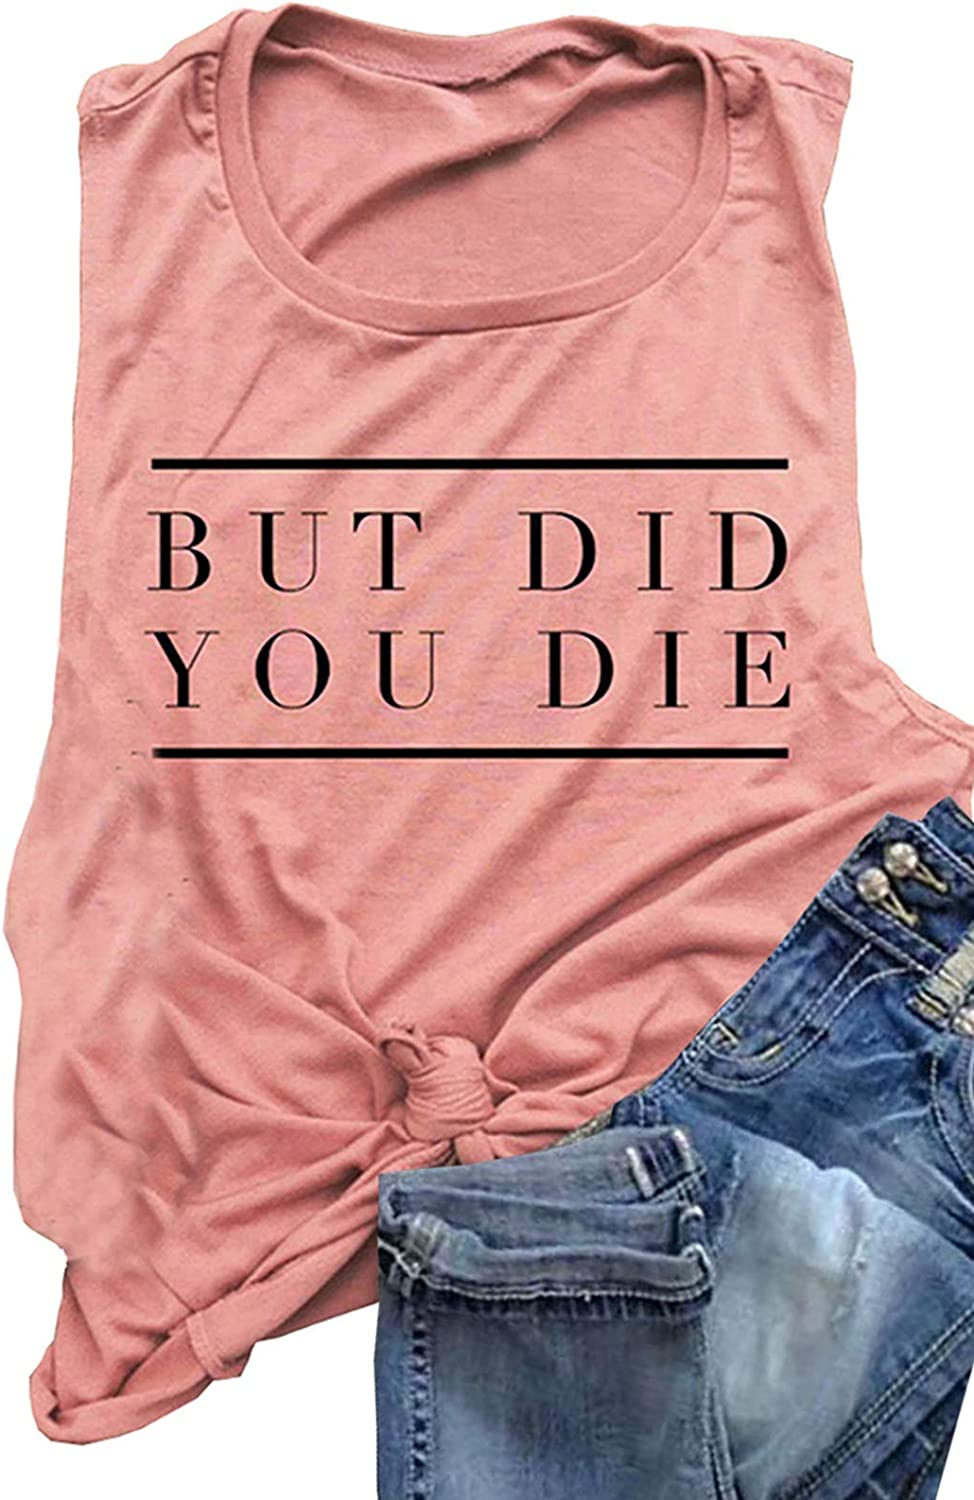 AIMITAG But Did You Die Muscle Tank Top Women Workout Tank Vacation Shirt Casual Letters Print Sleeveless Holiday Shirt